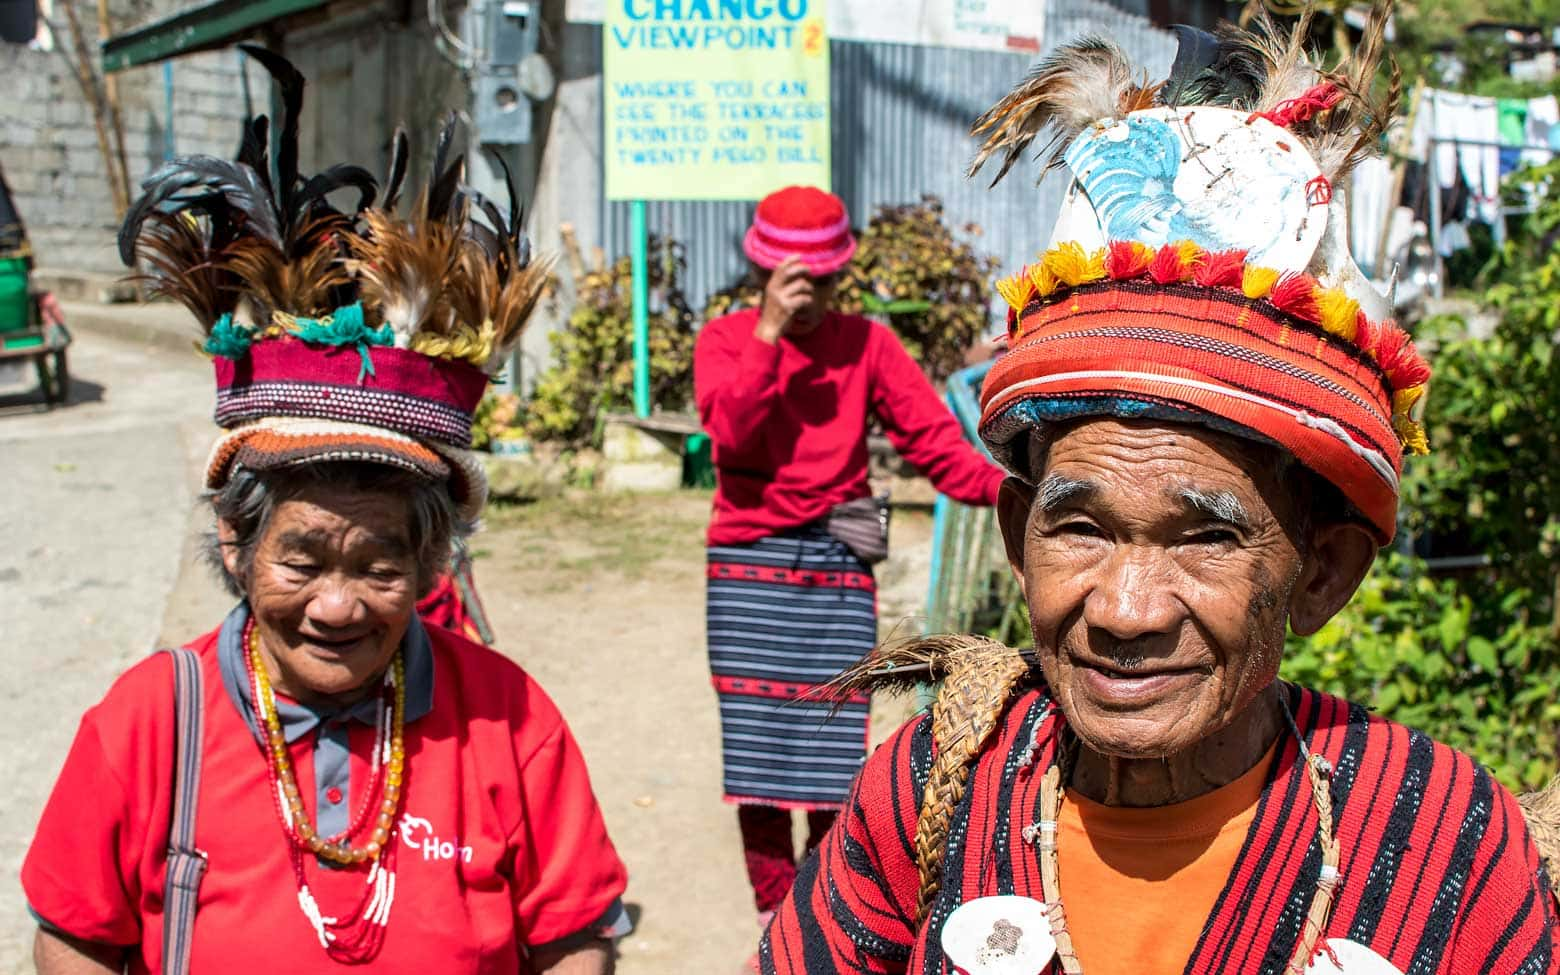 old folks in the Philippines in national dresses